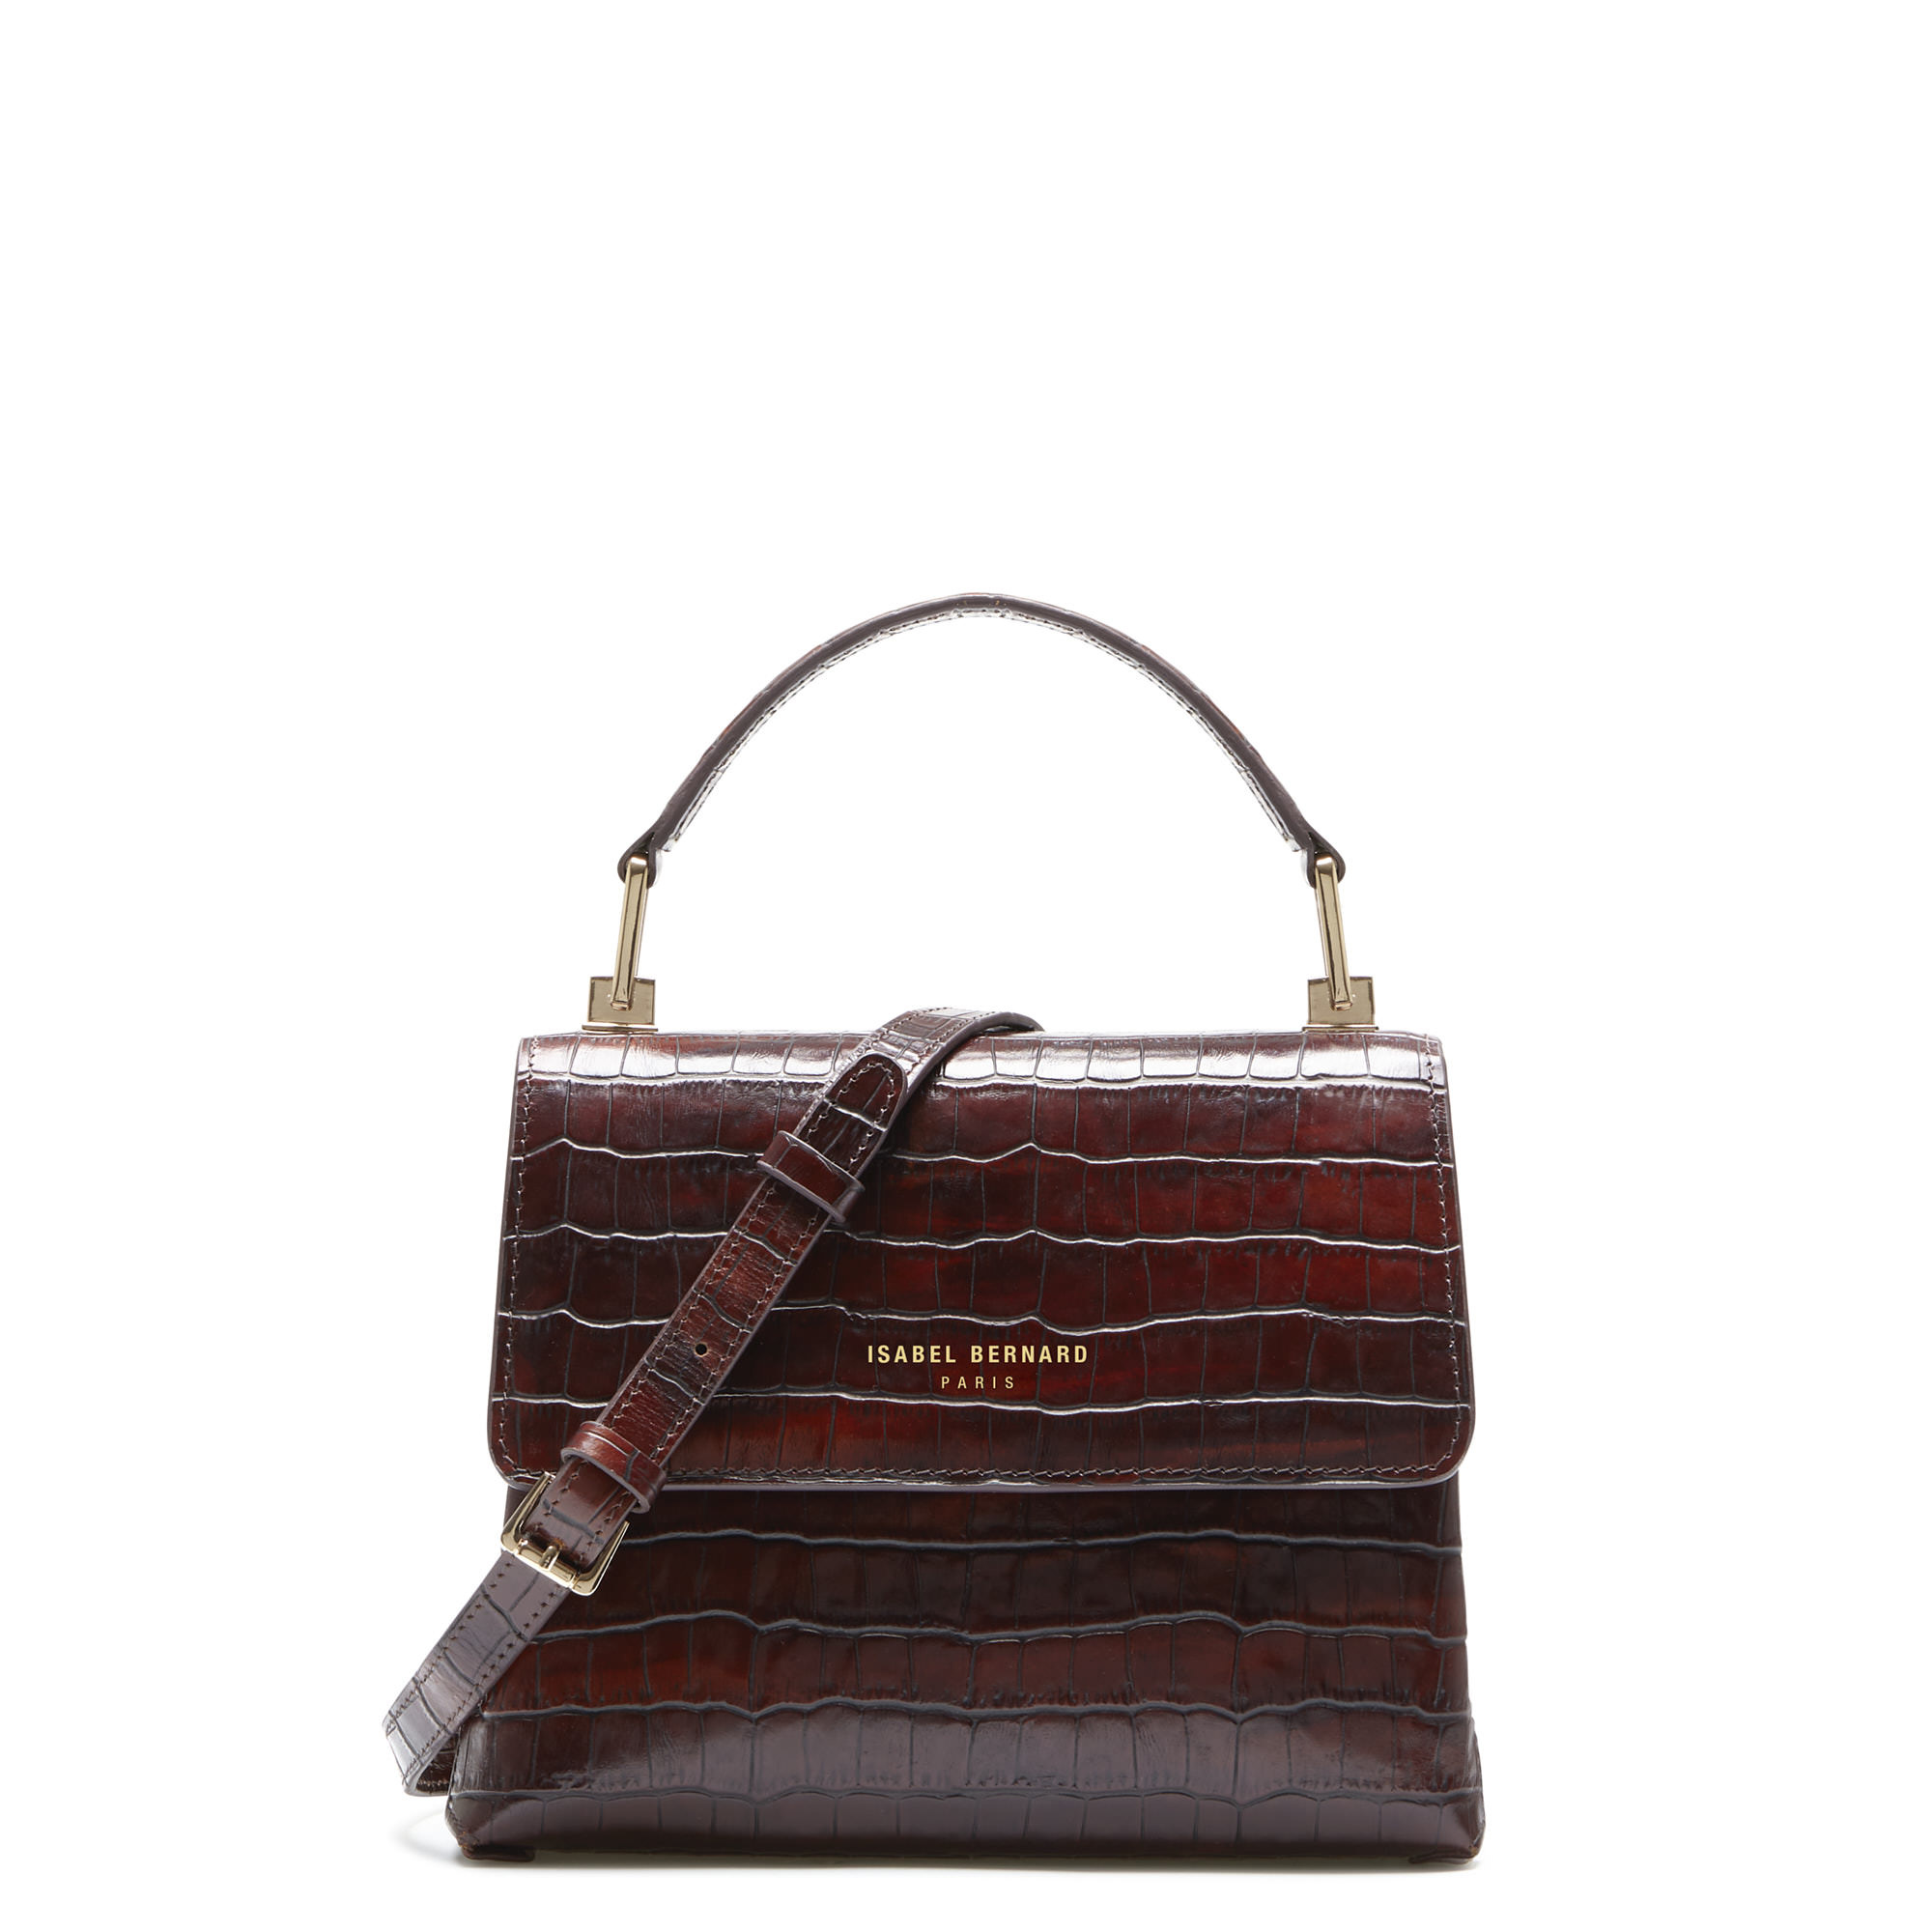 Isabel Bernard Femme Forte Heline croco brown calfskin leather handbag